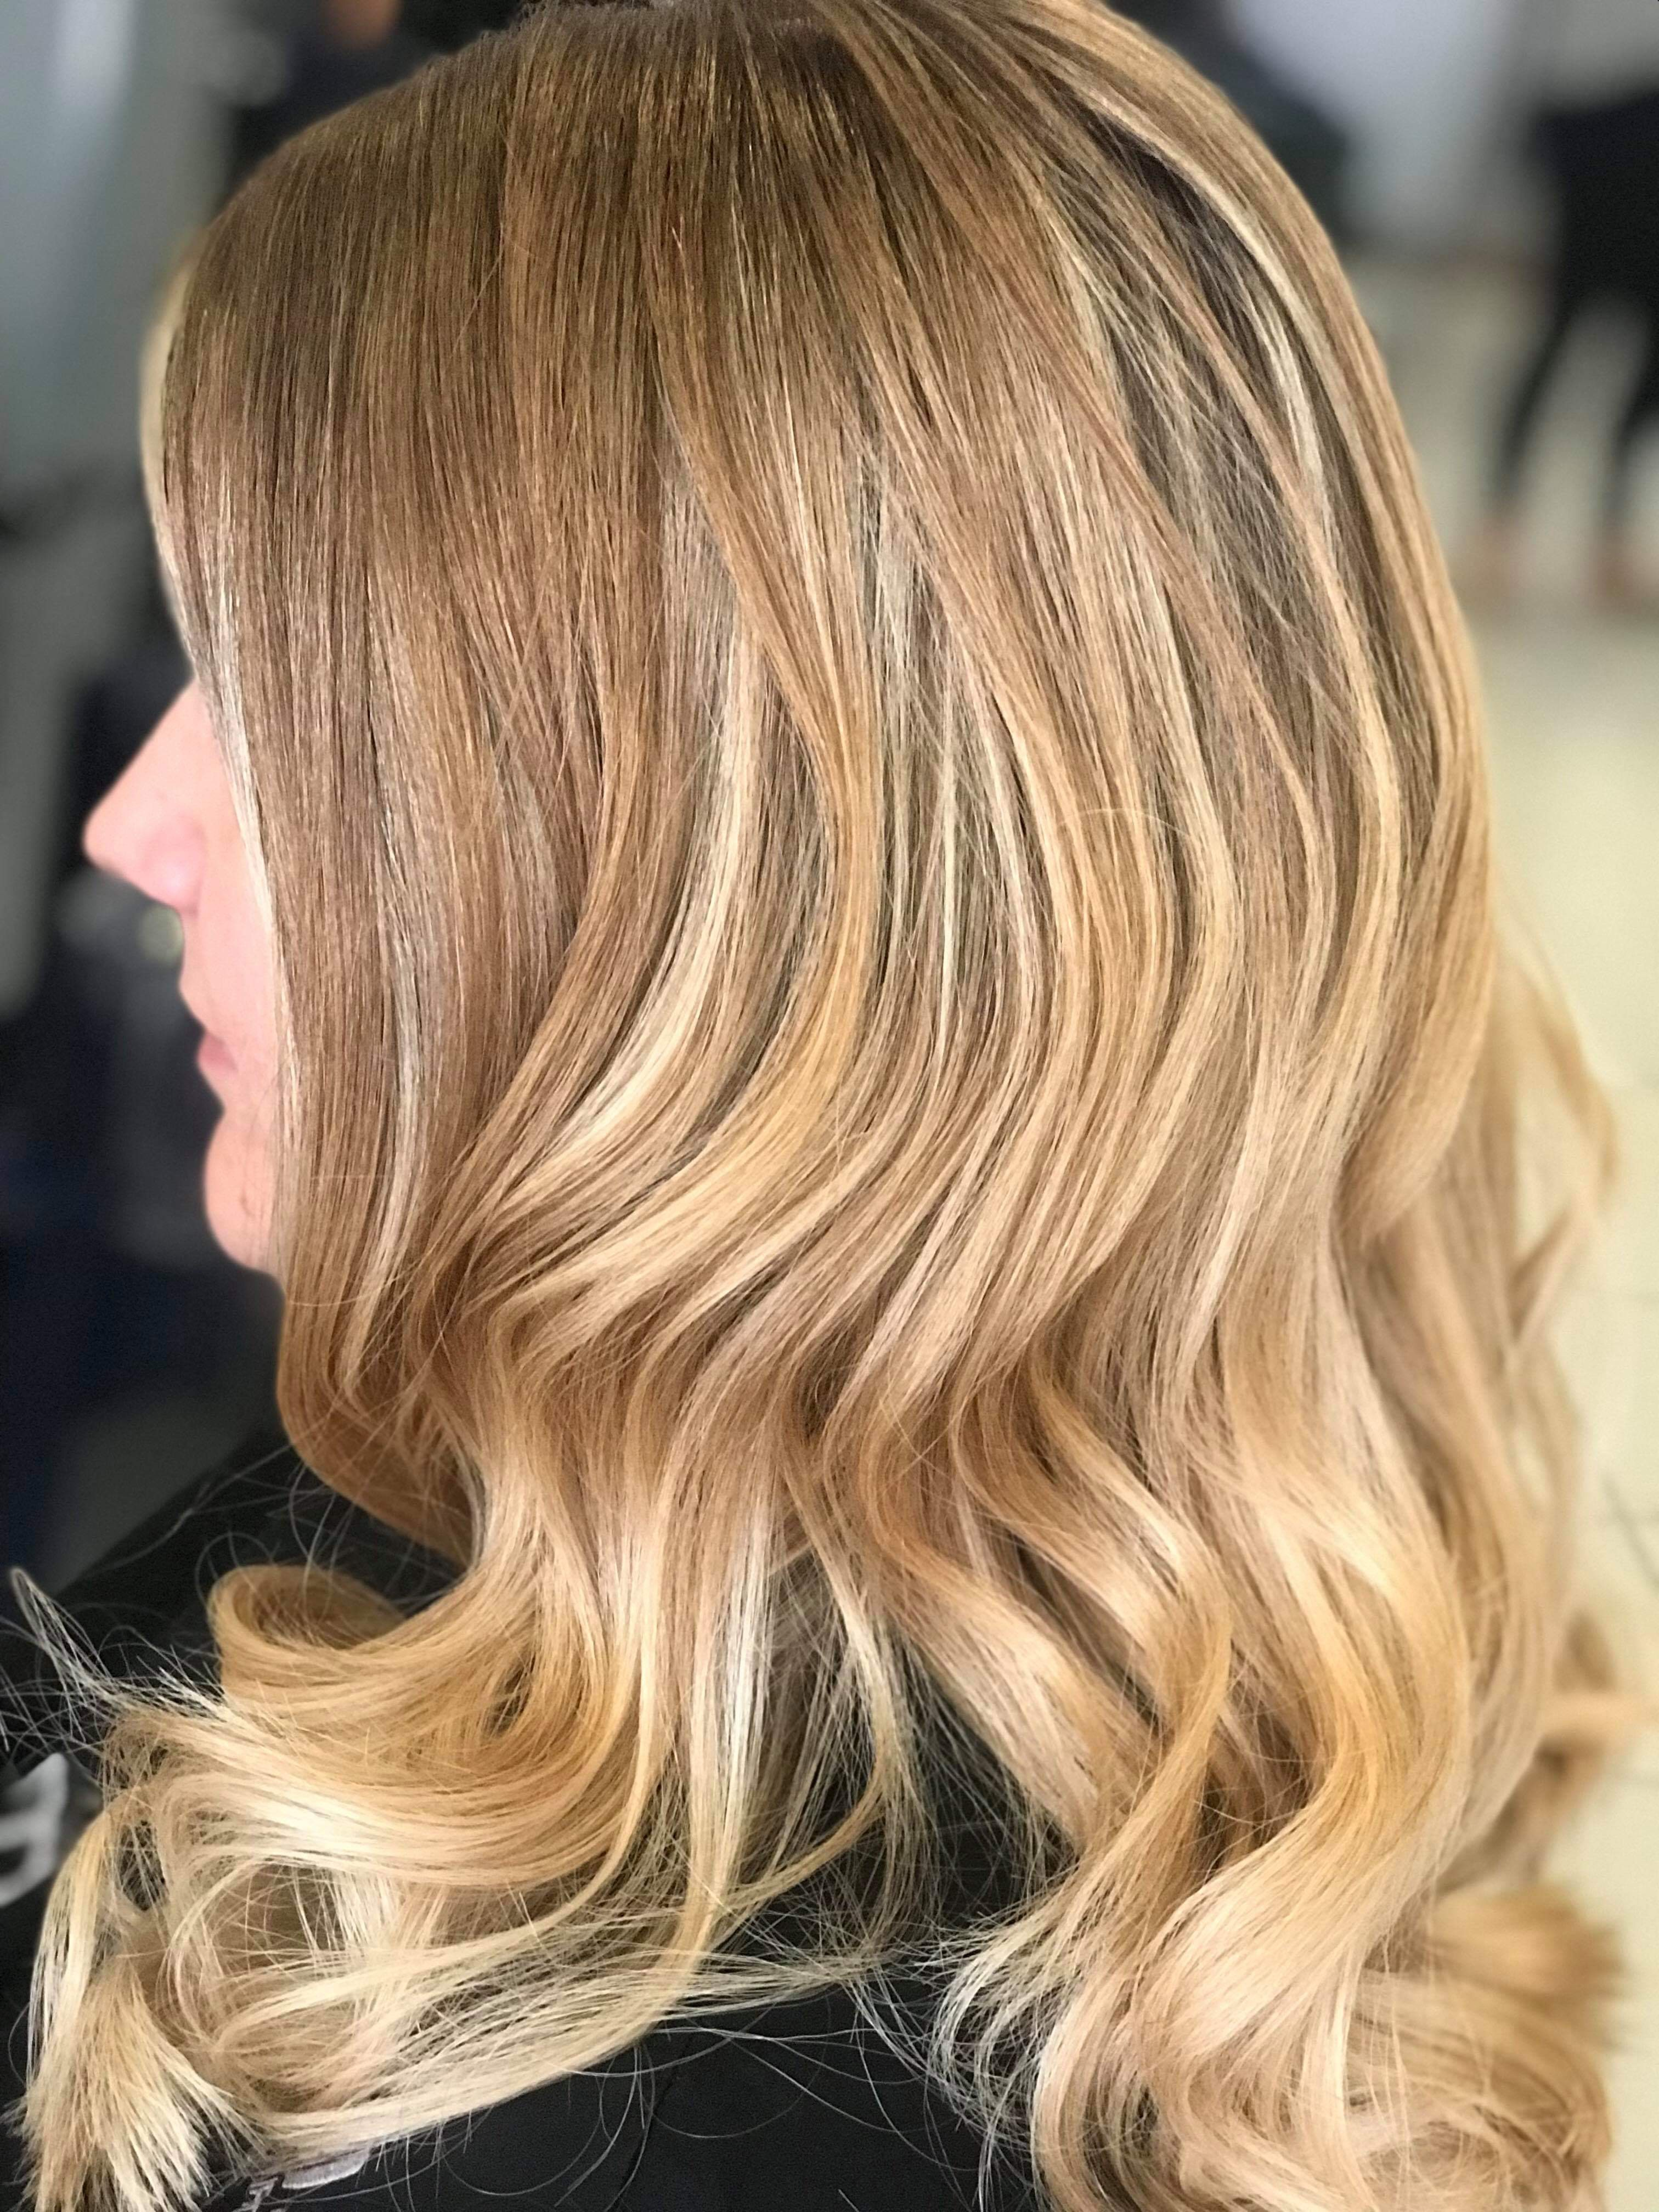 Bespoke Hairdressing Rugby Beach waves